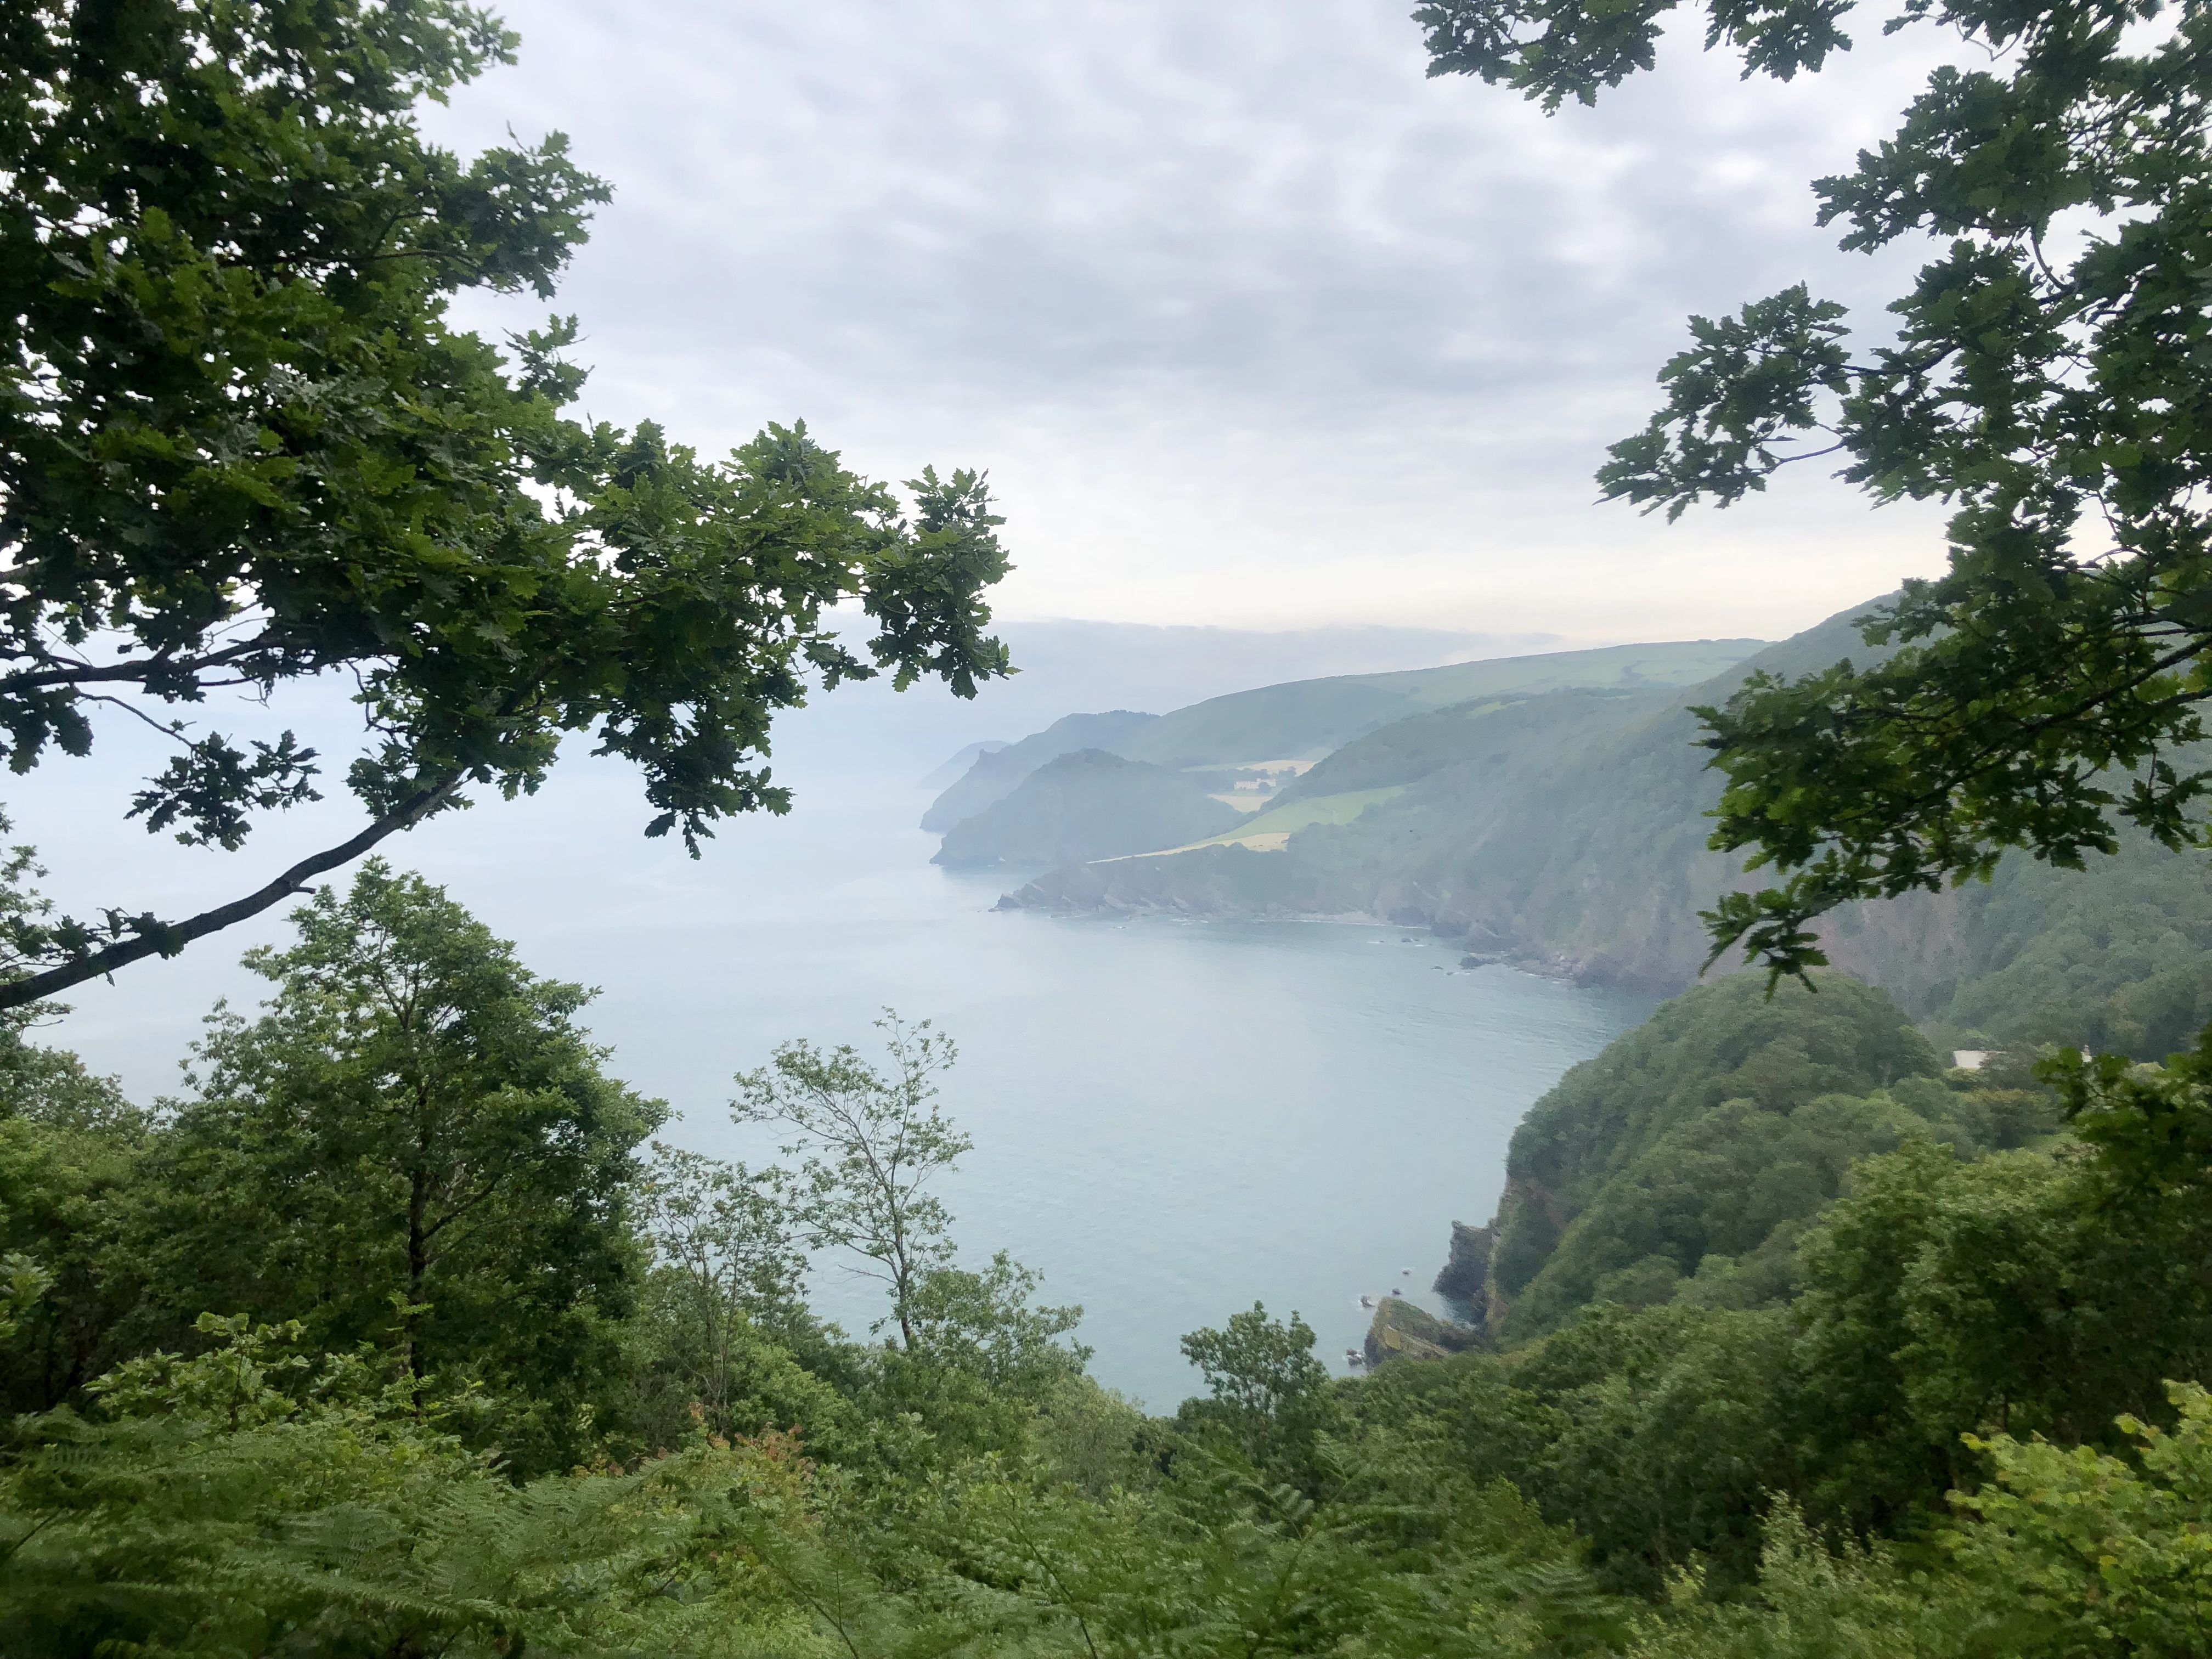 Looking through the trees back along the coastline on the walk from Lynton to Heddon's Mouth just before Woody Bay